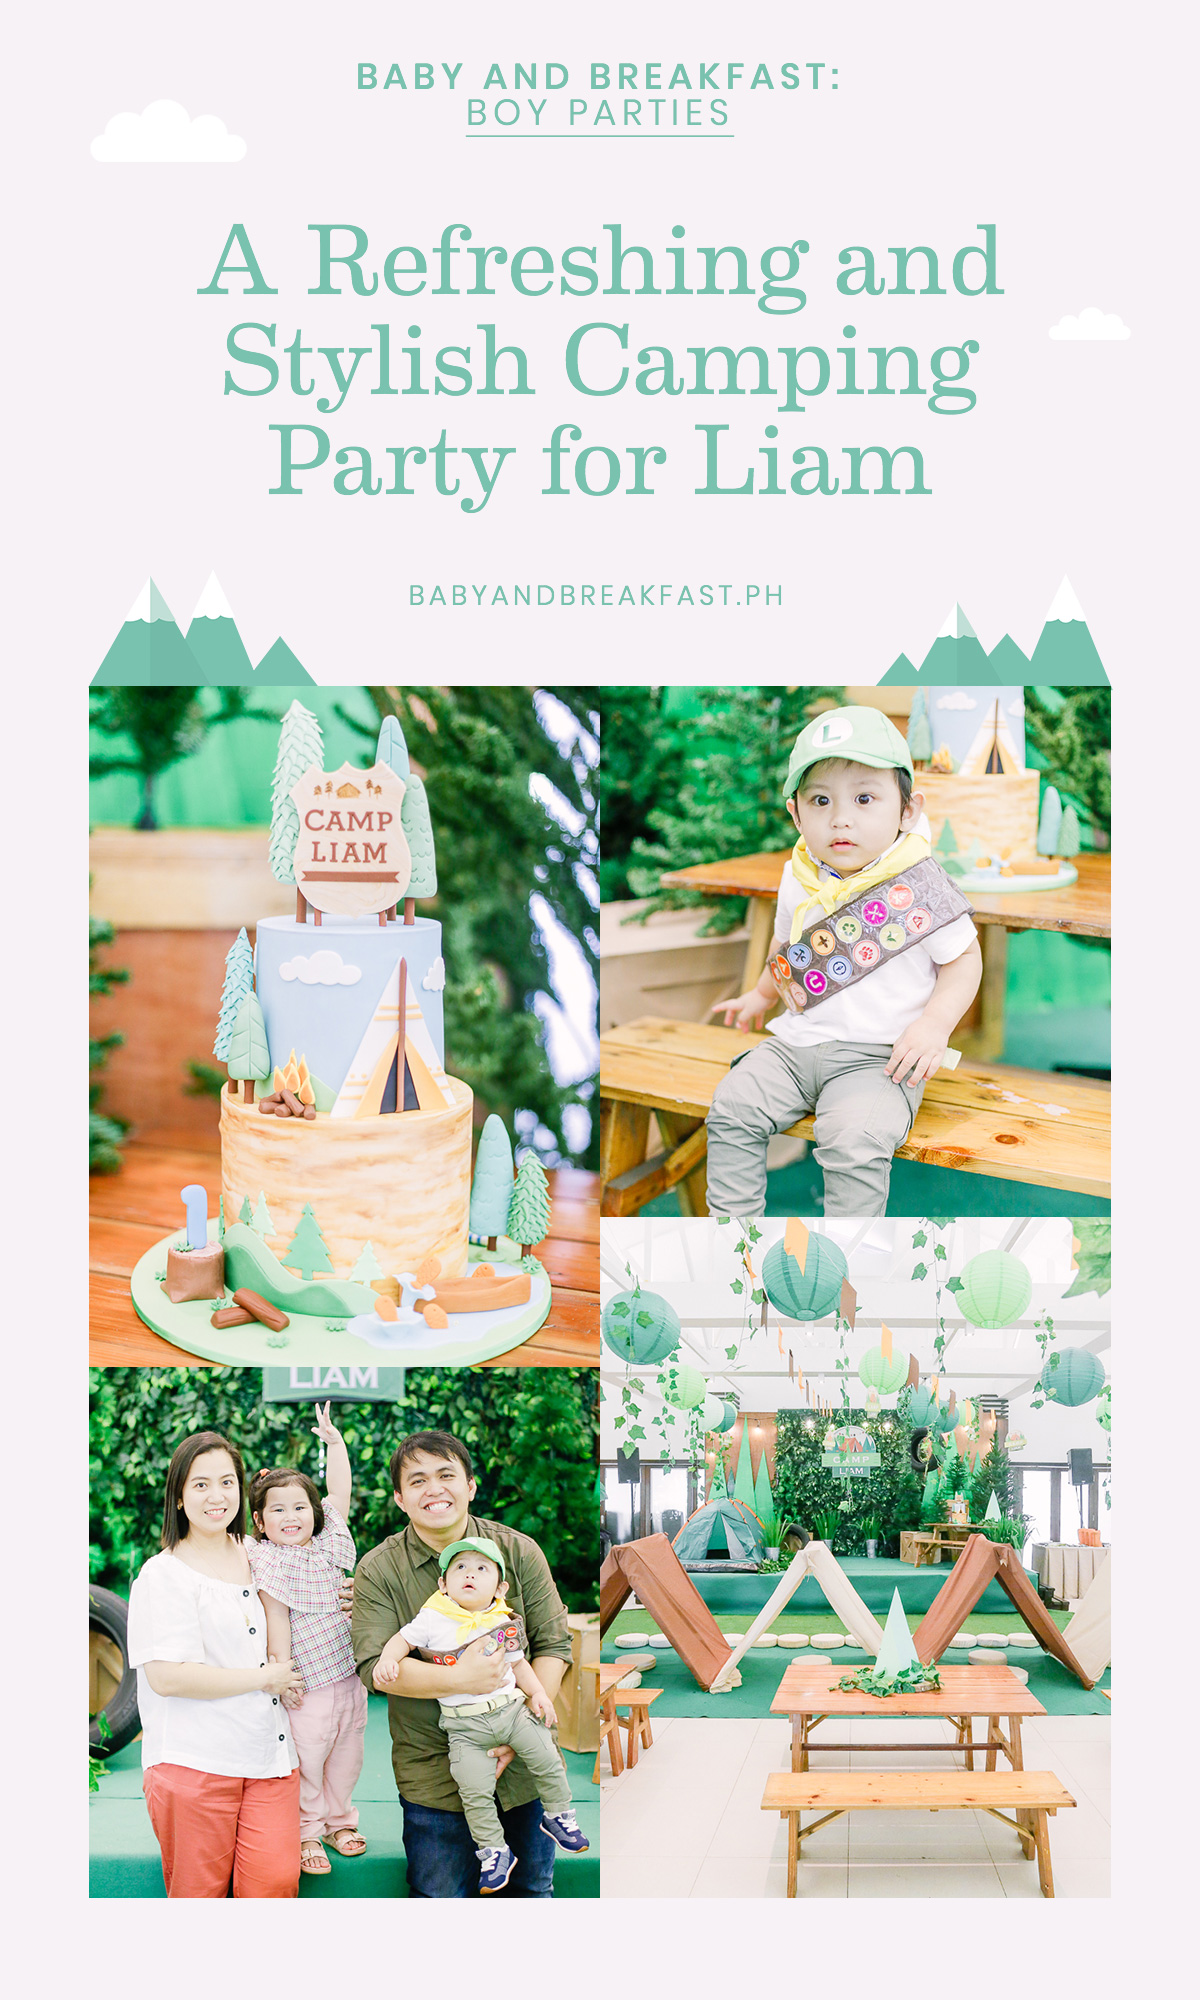 Baby and Breakfast: Boy Parties A Refreshing and Stylish Camping Party for Liam